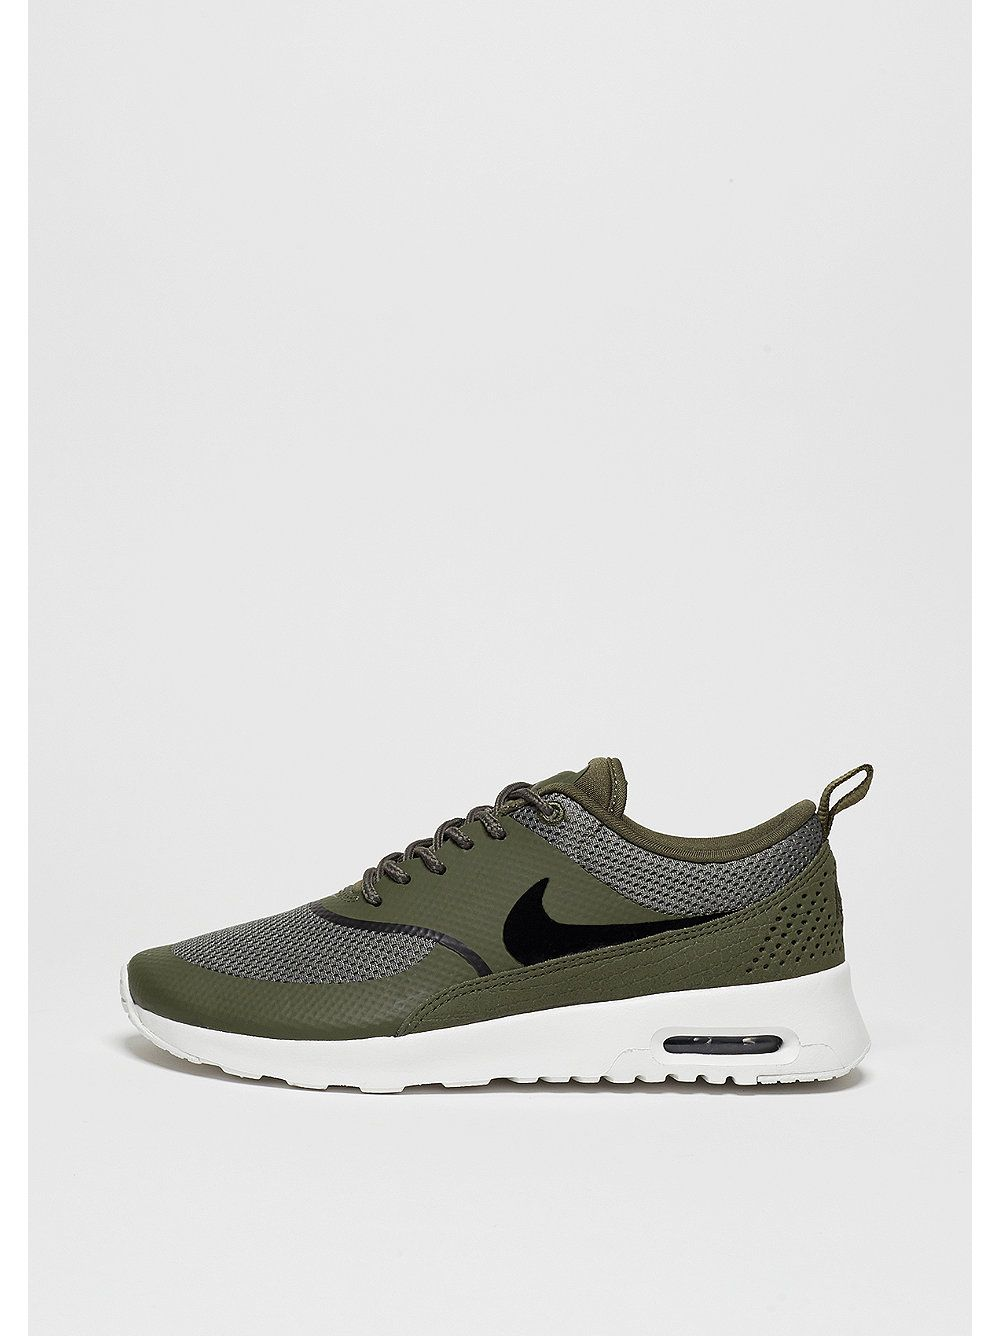 super popular 154e8 b28f4 NIKE Air Max Thea med olive black summit white